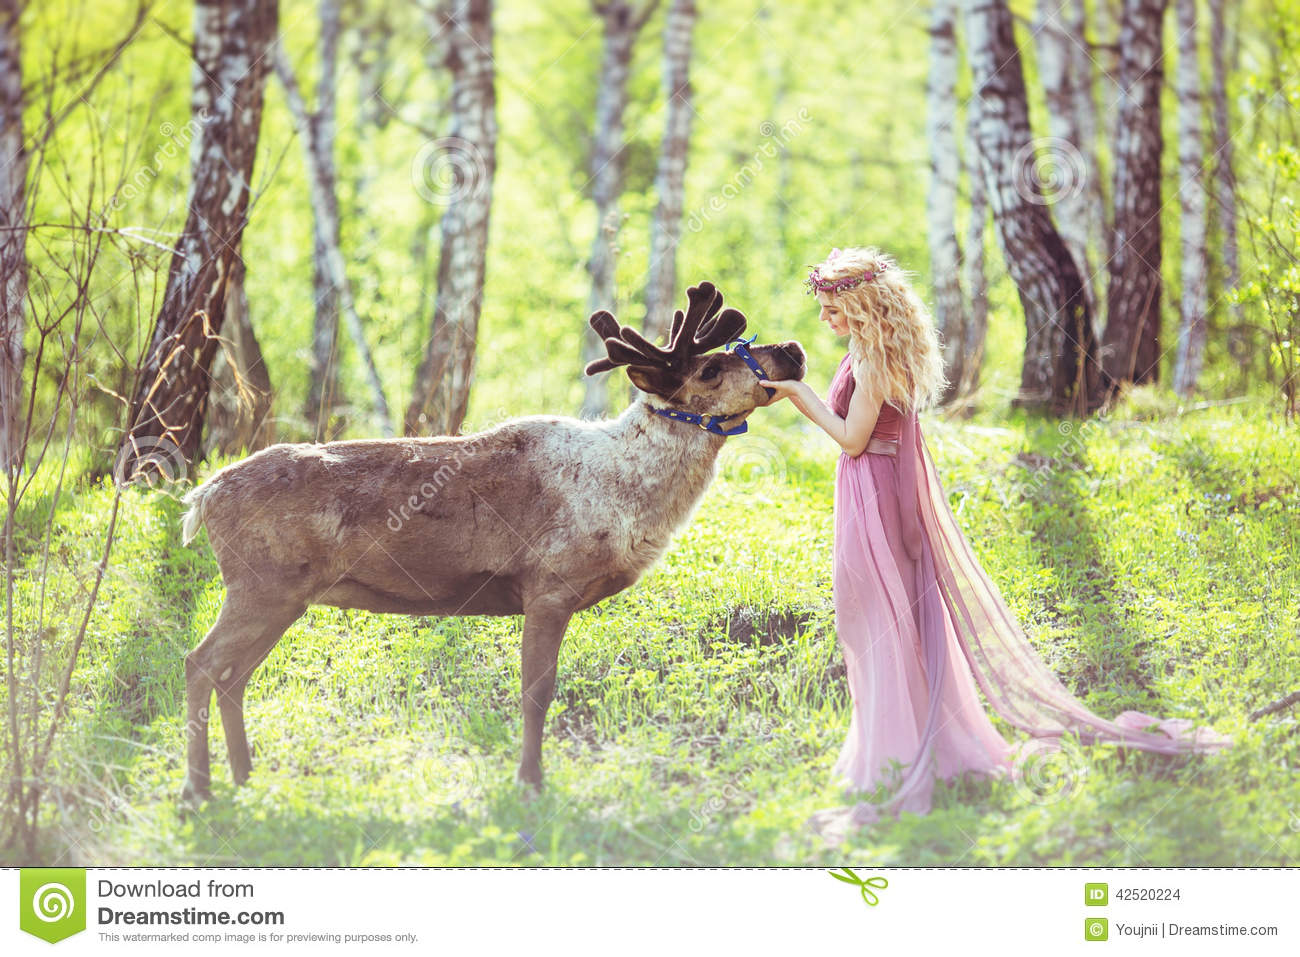 Cute Sleeping Babies Wallpapers Girl In Fairy Dress And Reindeer In The Forest Stock Photo